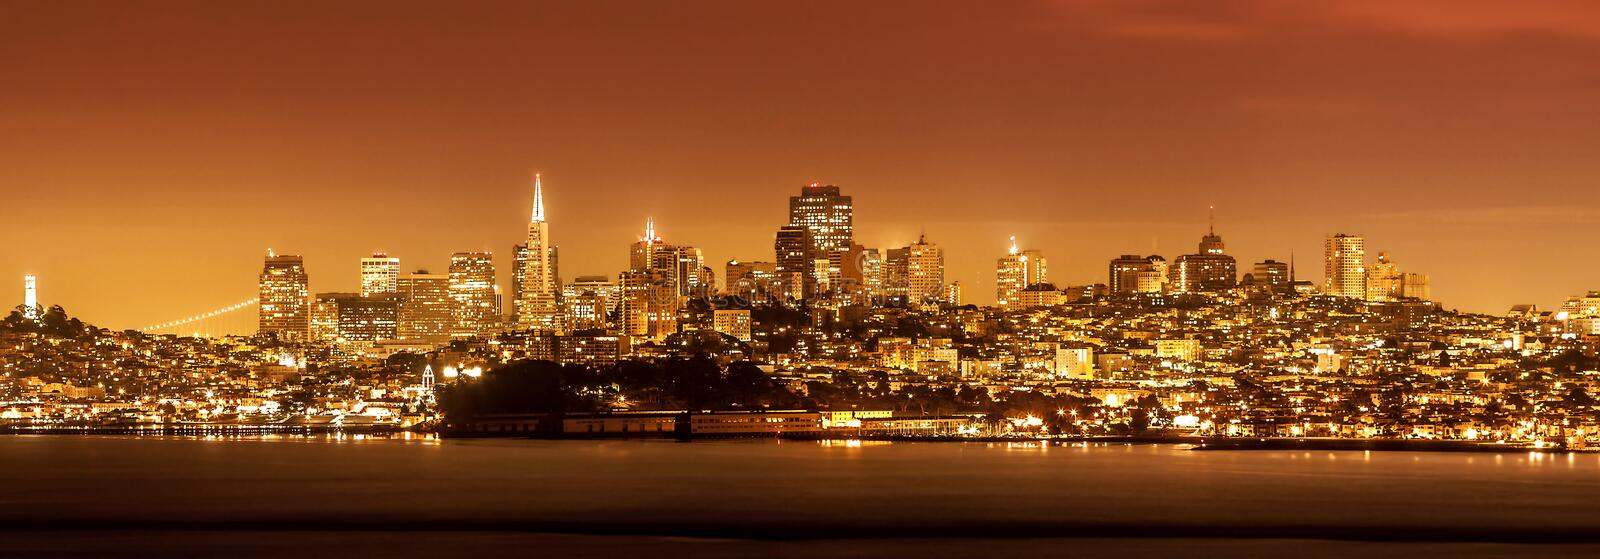 Horizon de San Francisco la nuit, Etats-Unis photo libre de droits